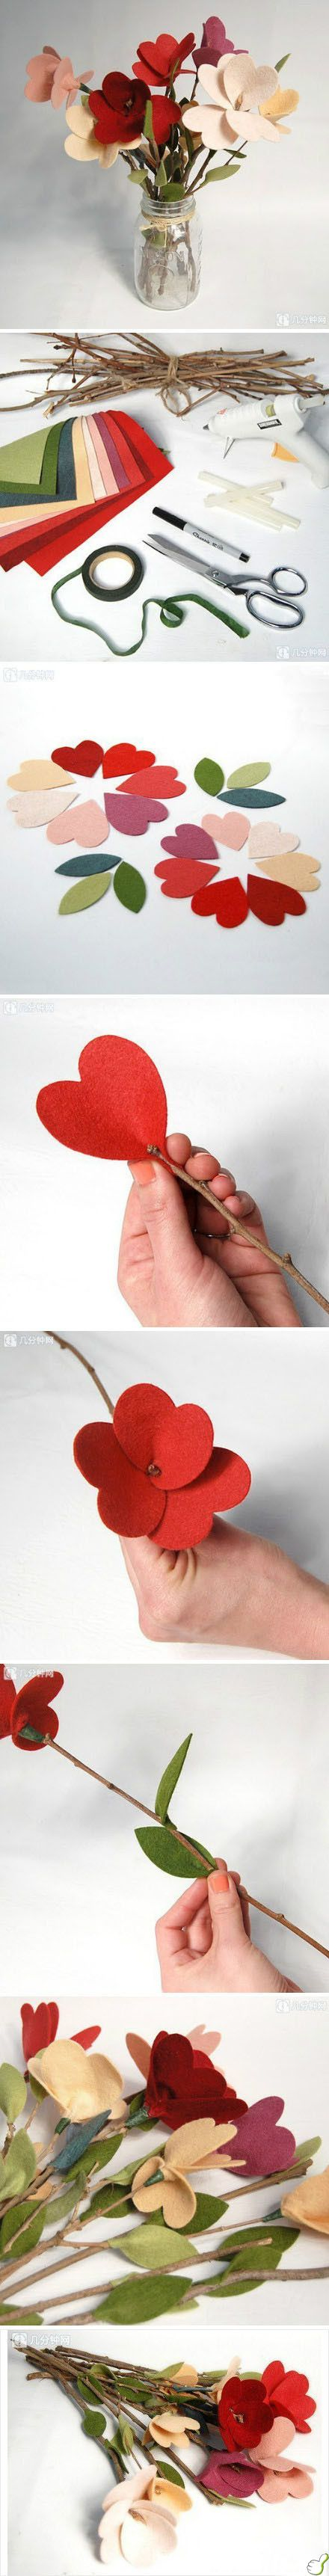 "Beautiful wool felt flowers- would be a great alternative to fresh-cut. Also nice gift for Grandmas on Mother's Day w/ a cute saying ""I'll love you until these flowers wilt"" or something"